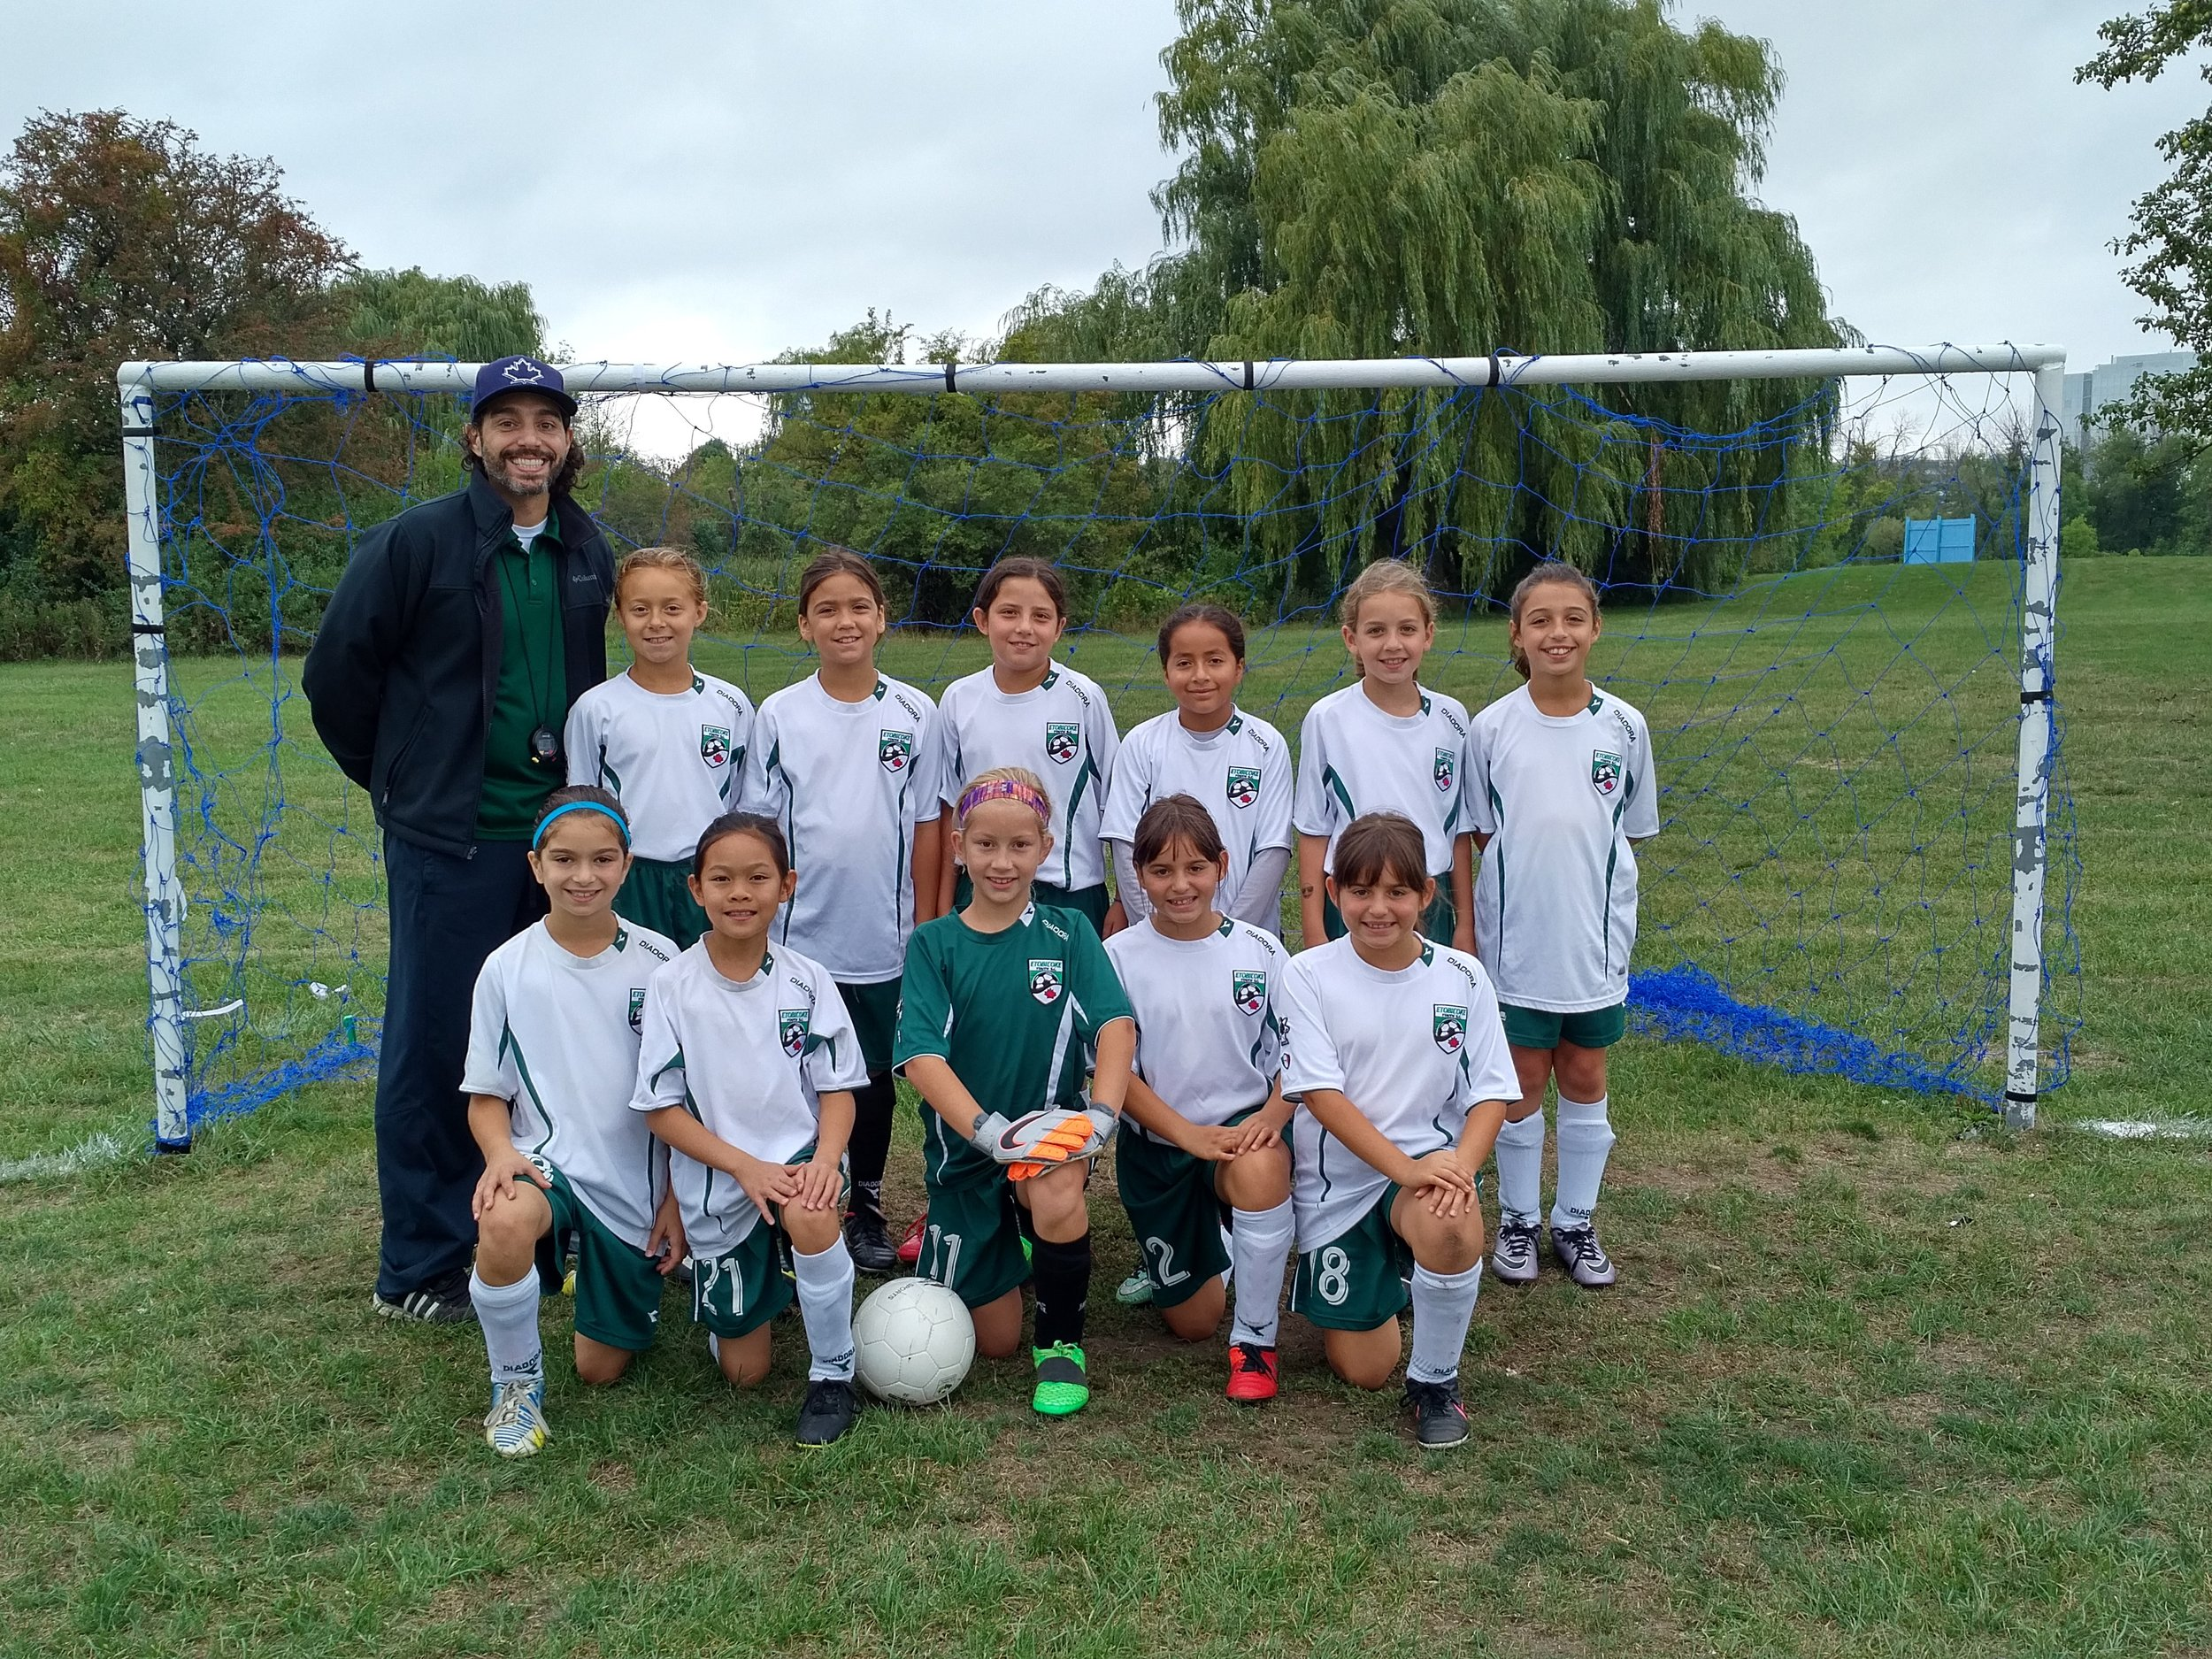 News — Etobicoke Youth Soccer Club